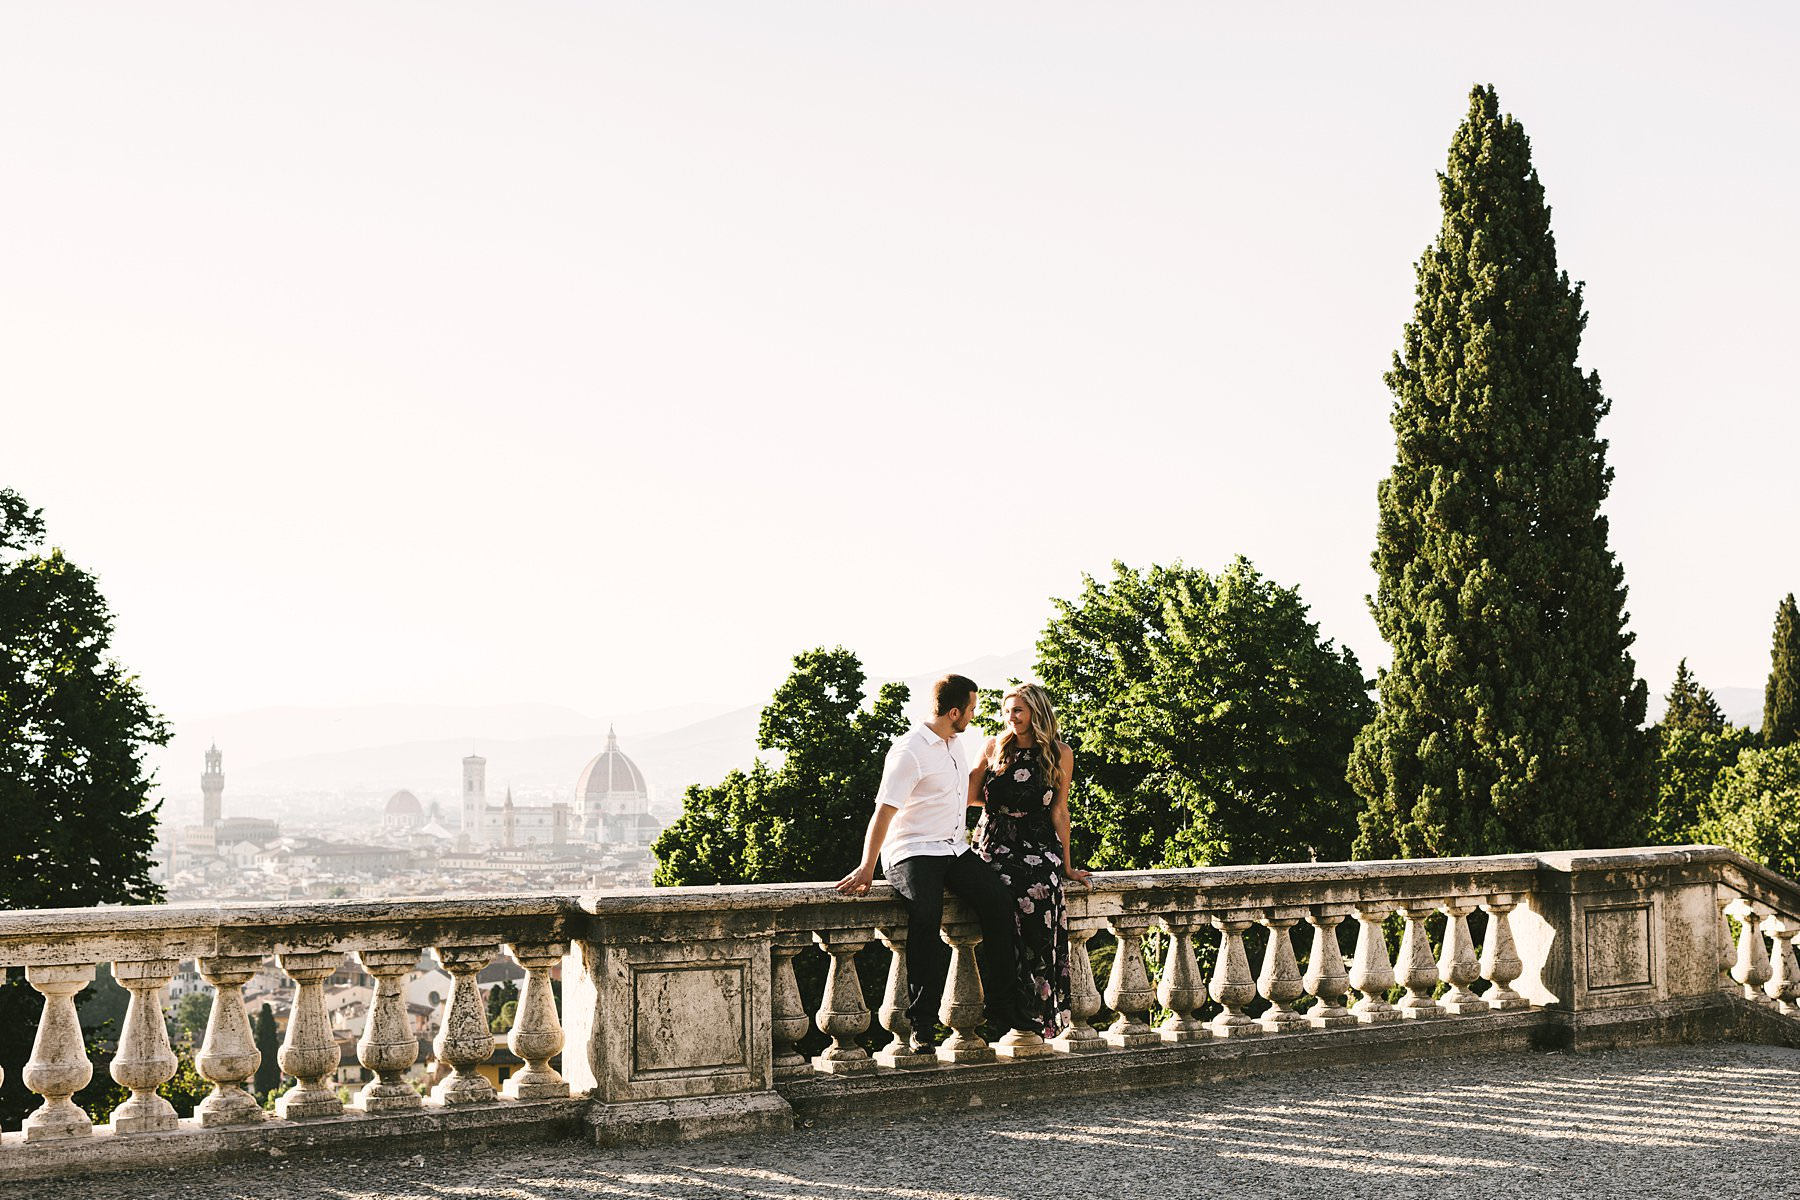 Andrea and Aaron's outdoor engagement photos. When they contacted me, I suggested them to take romantic outdoor engagement photos in different locations. Florence, Chianti and the surroundings are so beautiful that it would be a pity not to take advantage of them all. Part of the shooting had Florence as a precious frame: we went to San Miniato al Monte, which offers one of the best views over the city as well as some stunning architecture